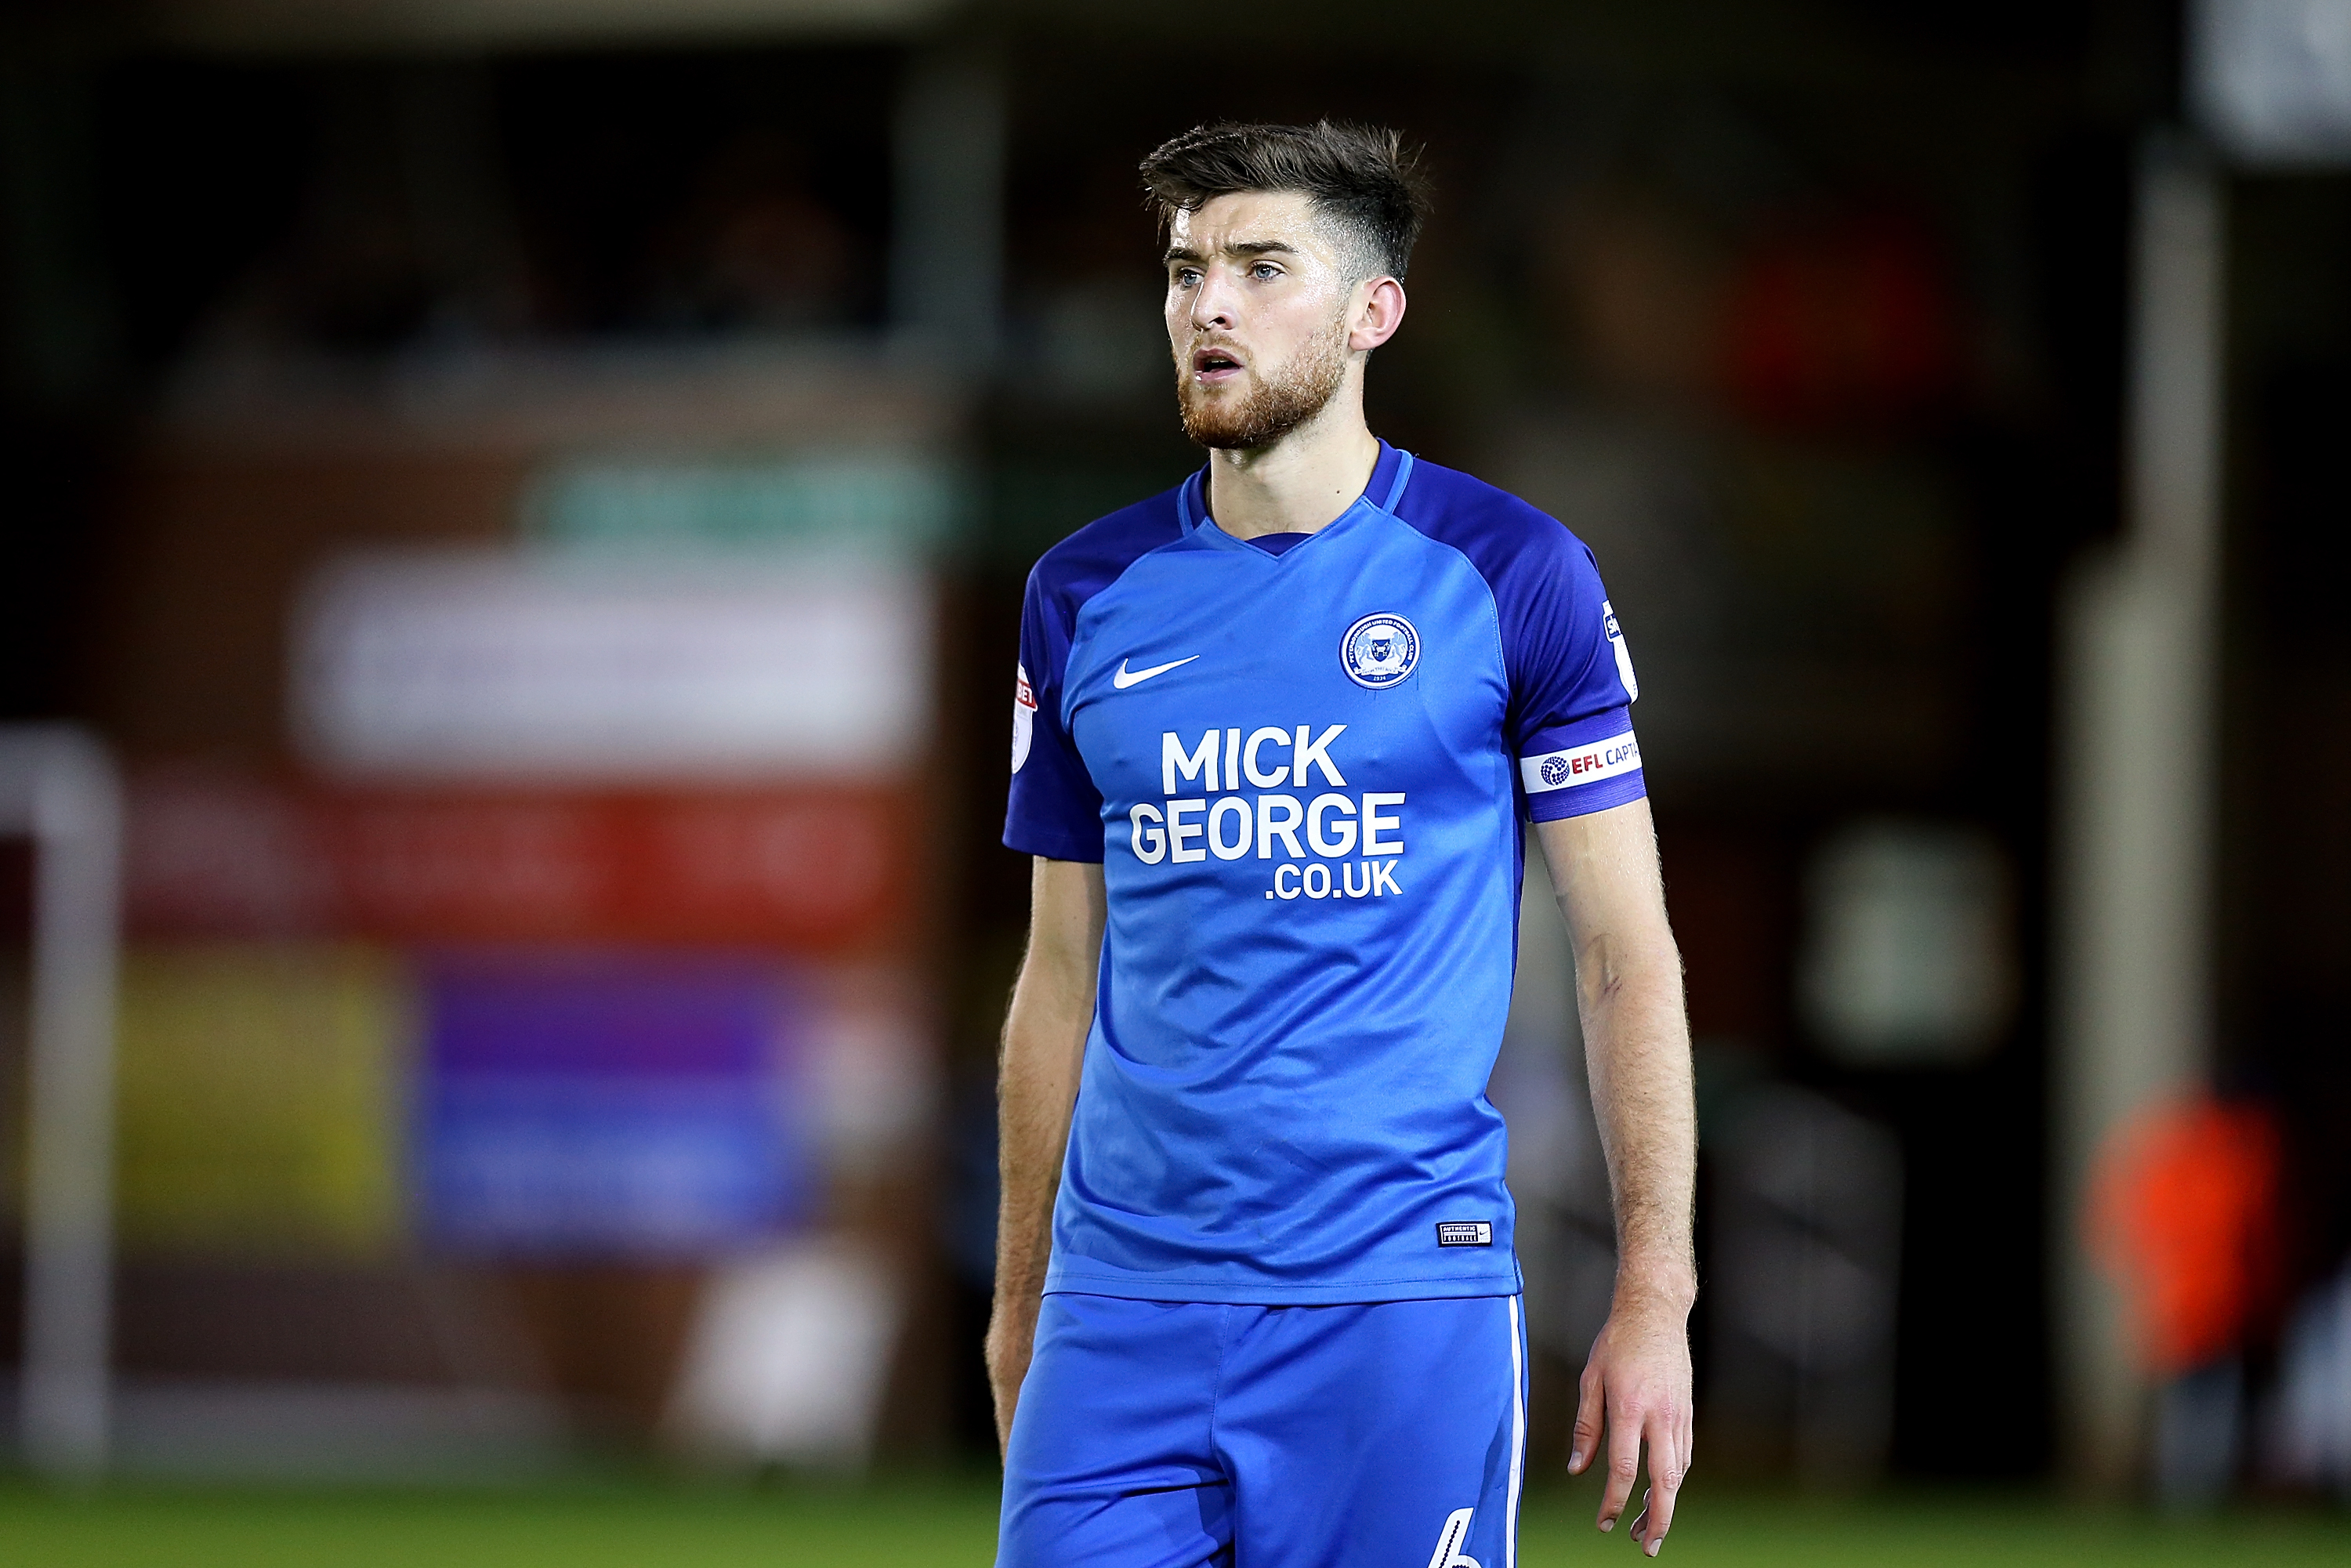 Jack Baldwin of Peterborough United in action during the Checkatrade Trophy match between Peterborough United and Northampton Town at The Abax Stadium on October 3, 2017 in Peterborough, England.